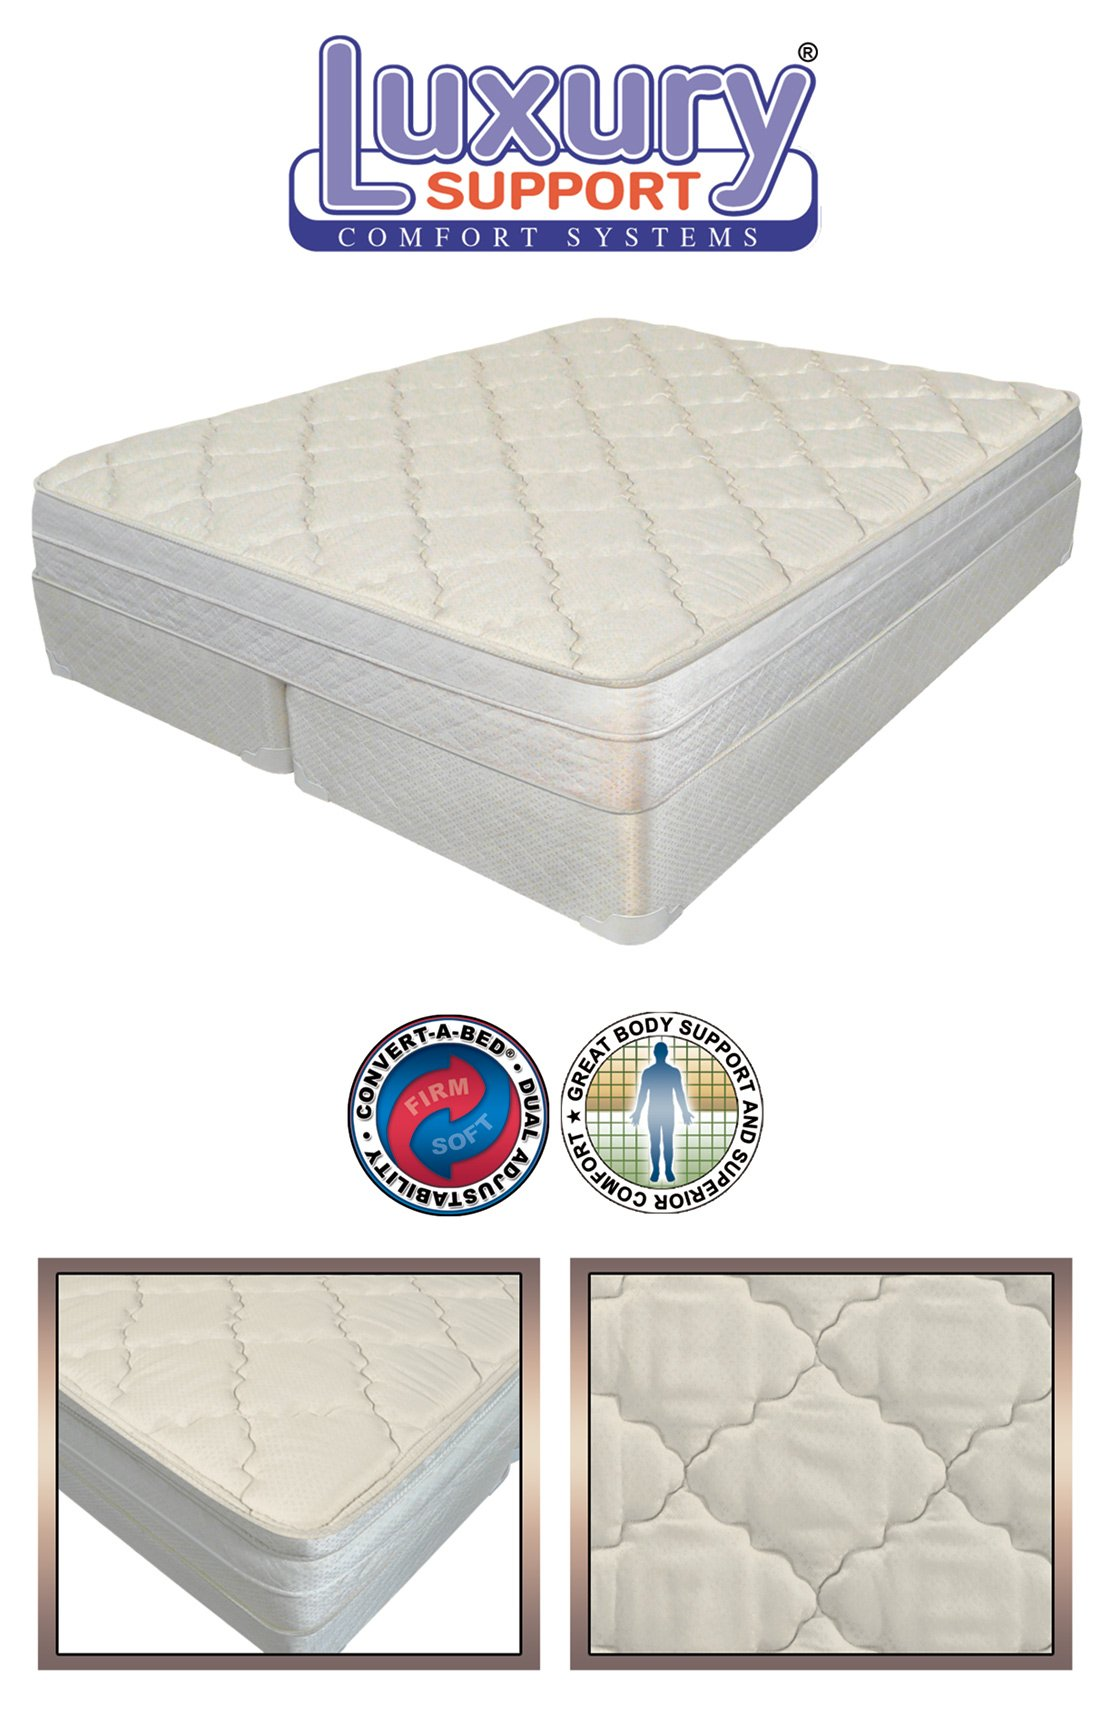 8 Inch King Size Innomax Luxury Support Evolutions Adjustable Sleep Air Bed Mattress. Includes by INNOMAX